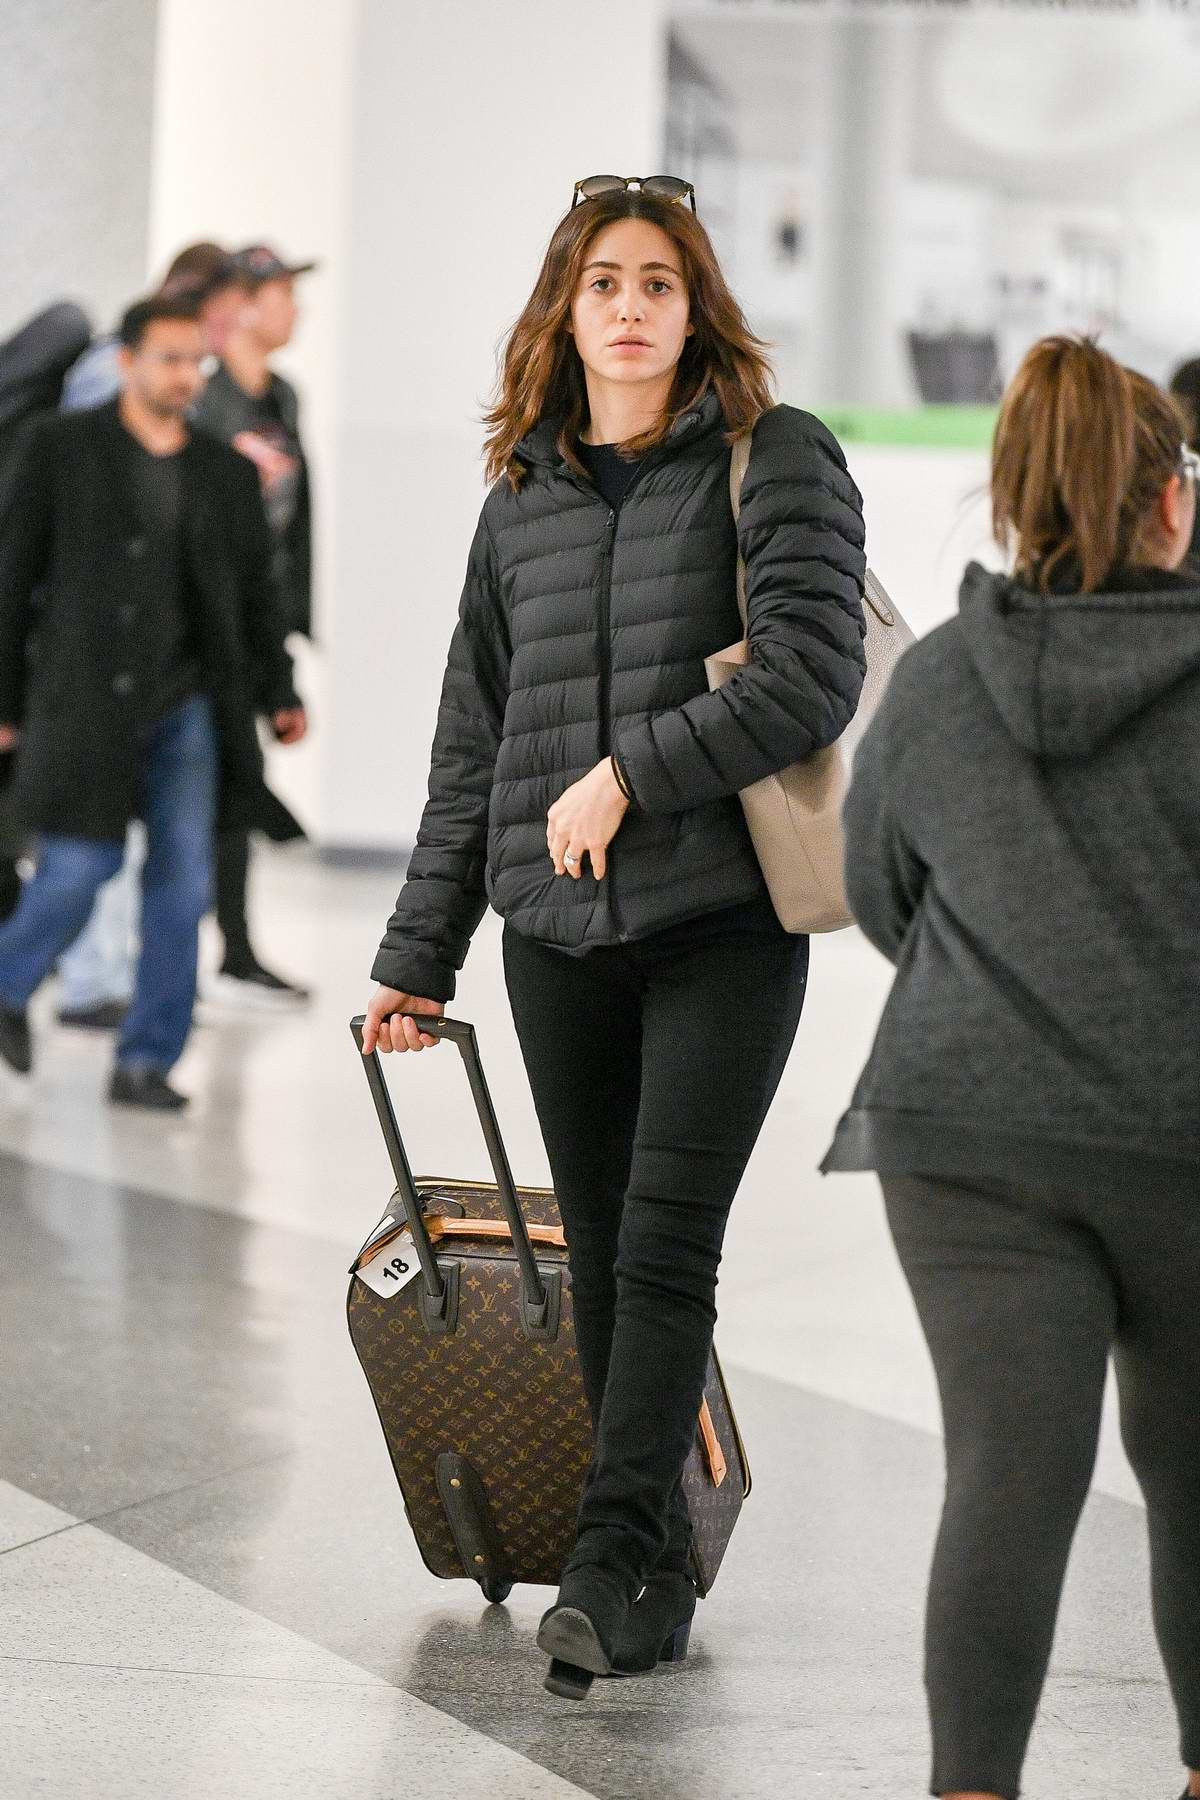 Emmy Rossum dons all black as she touches down at LAX airport in Los Angeles